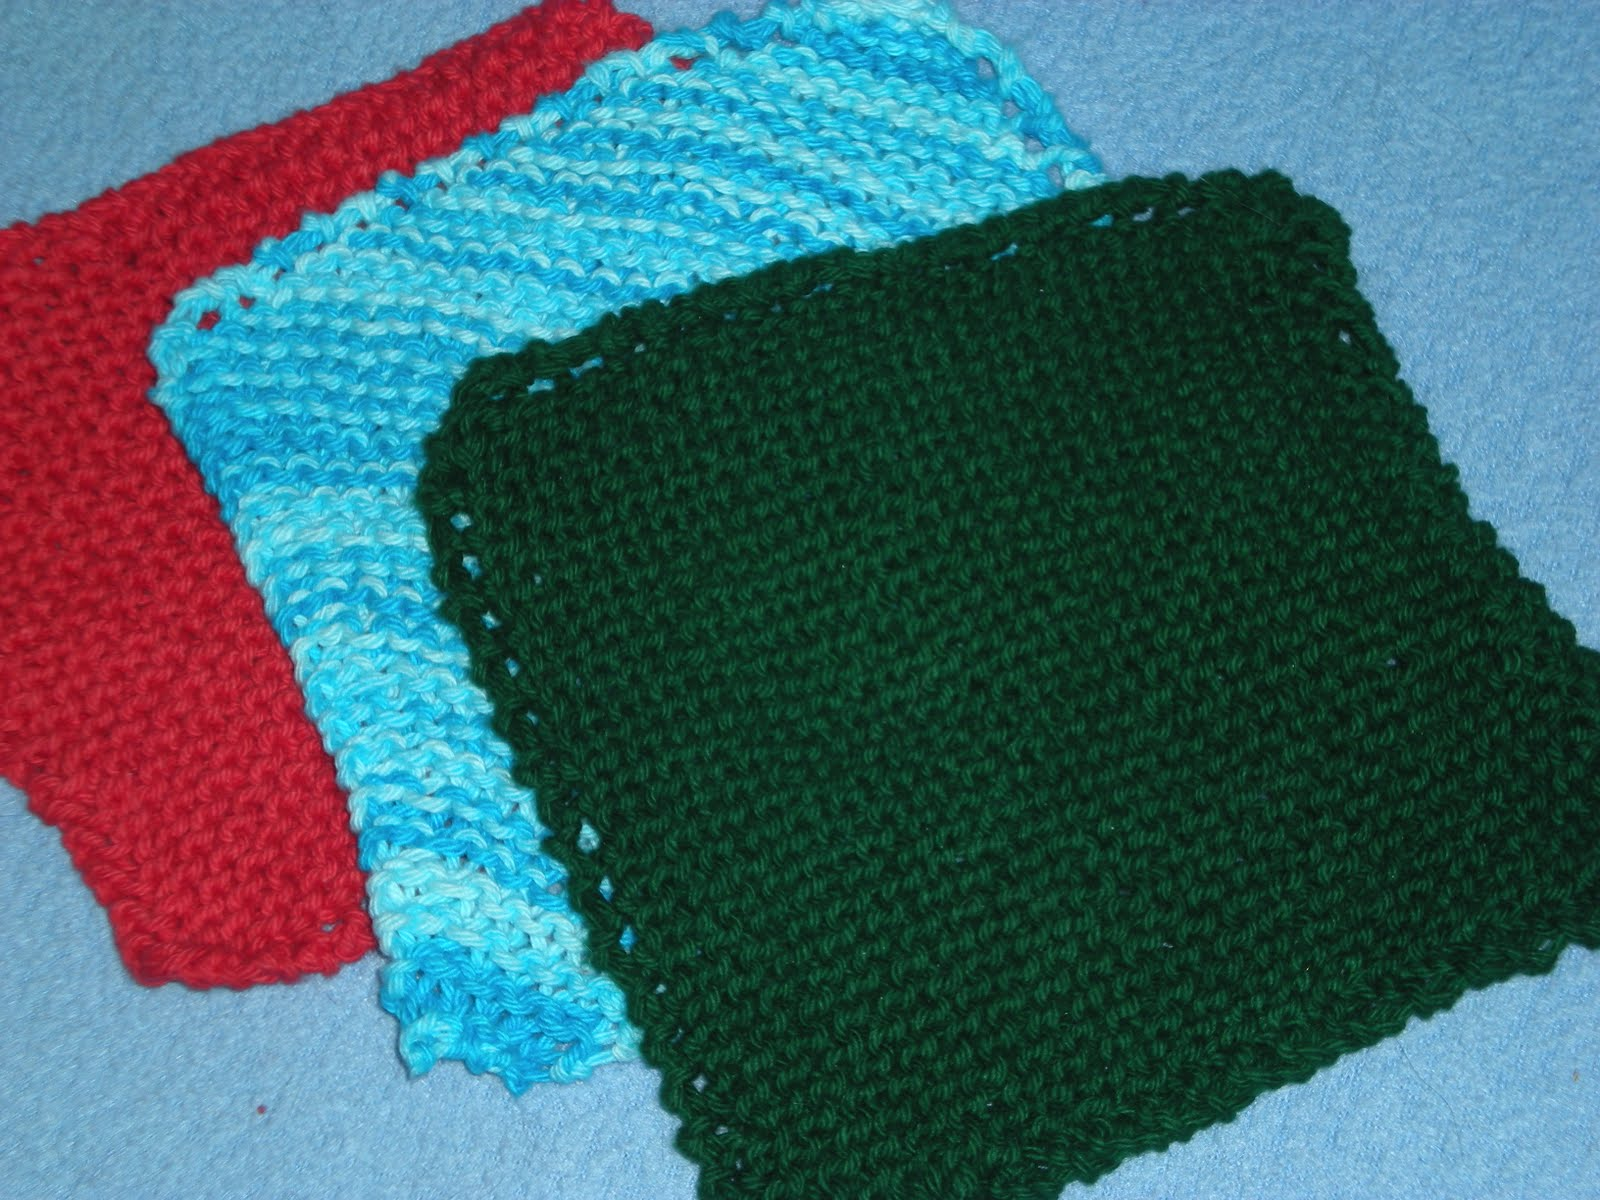 Knitting A Dishcloth Pattern Easy : KNITTED PATTERNS FOR DISHCLOTHS   Browse Patterns